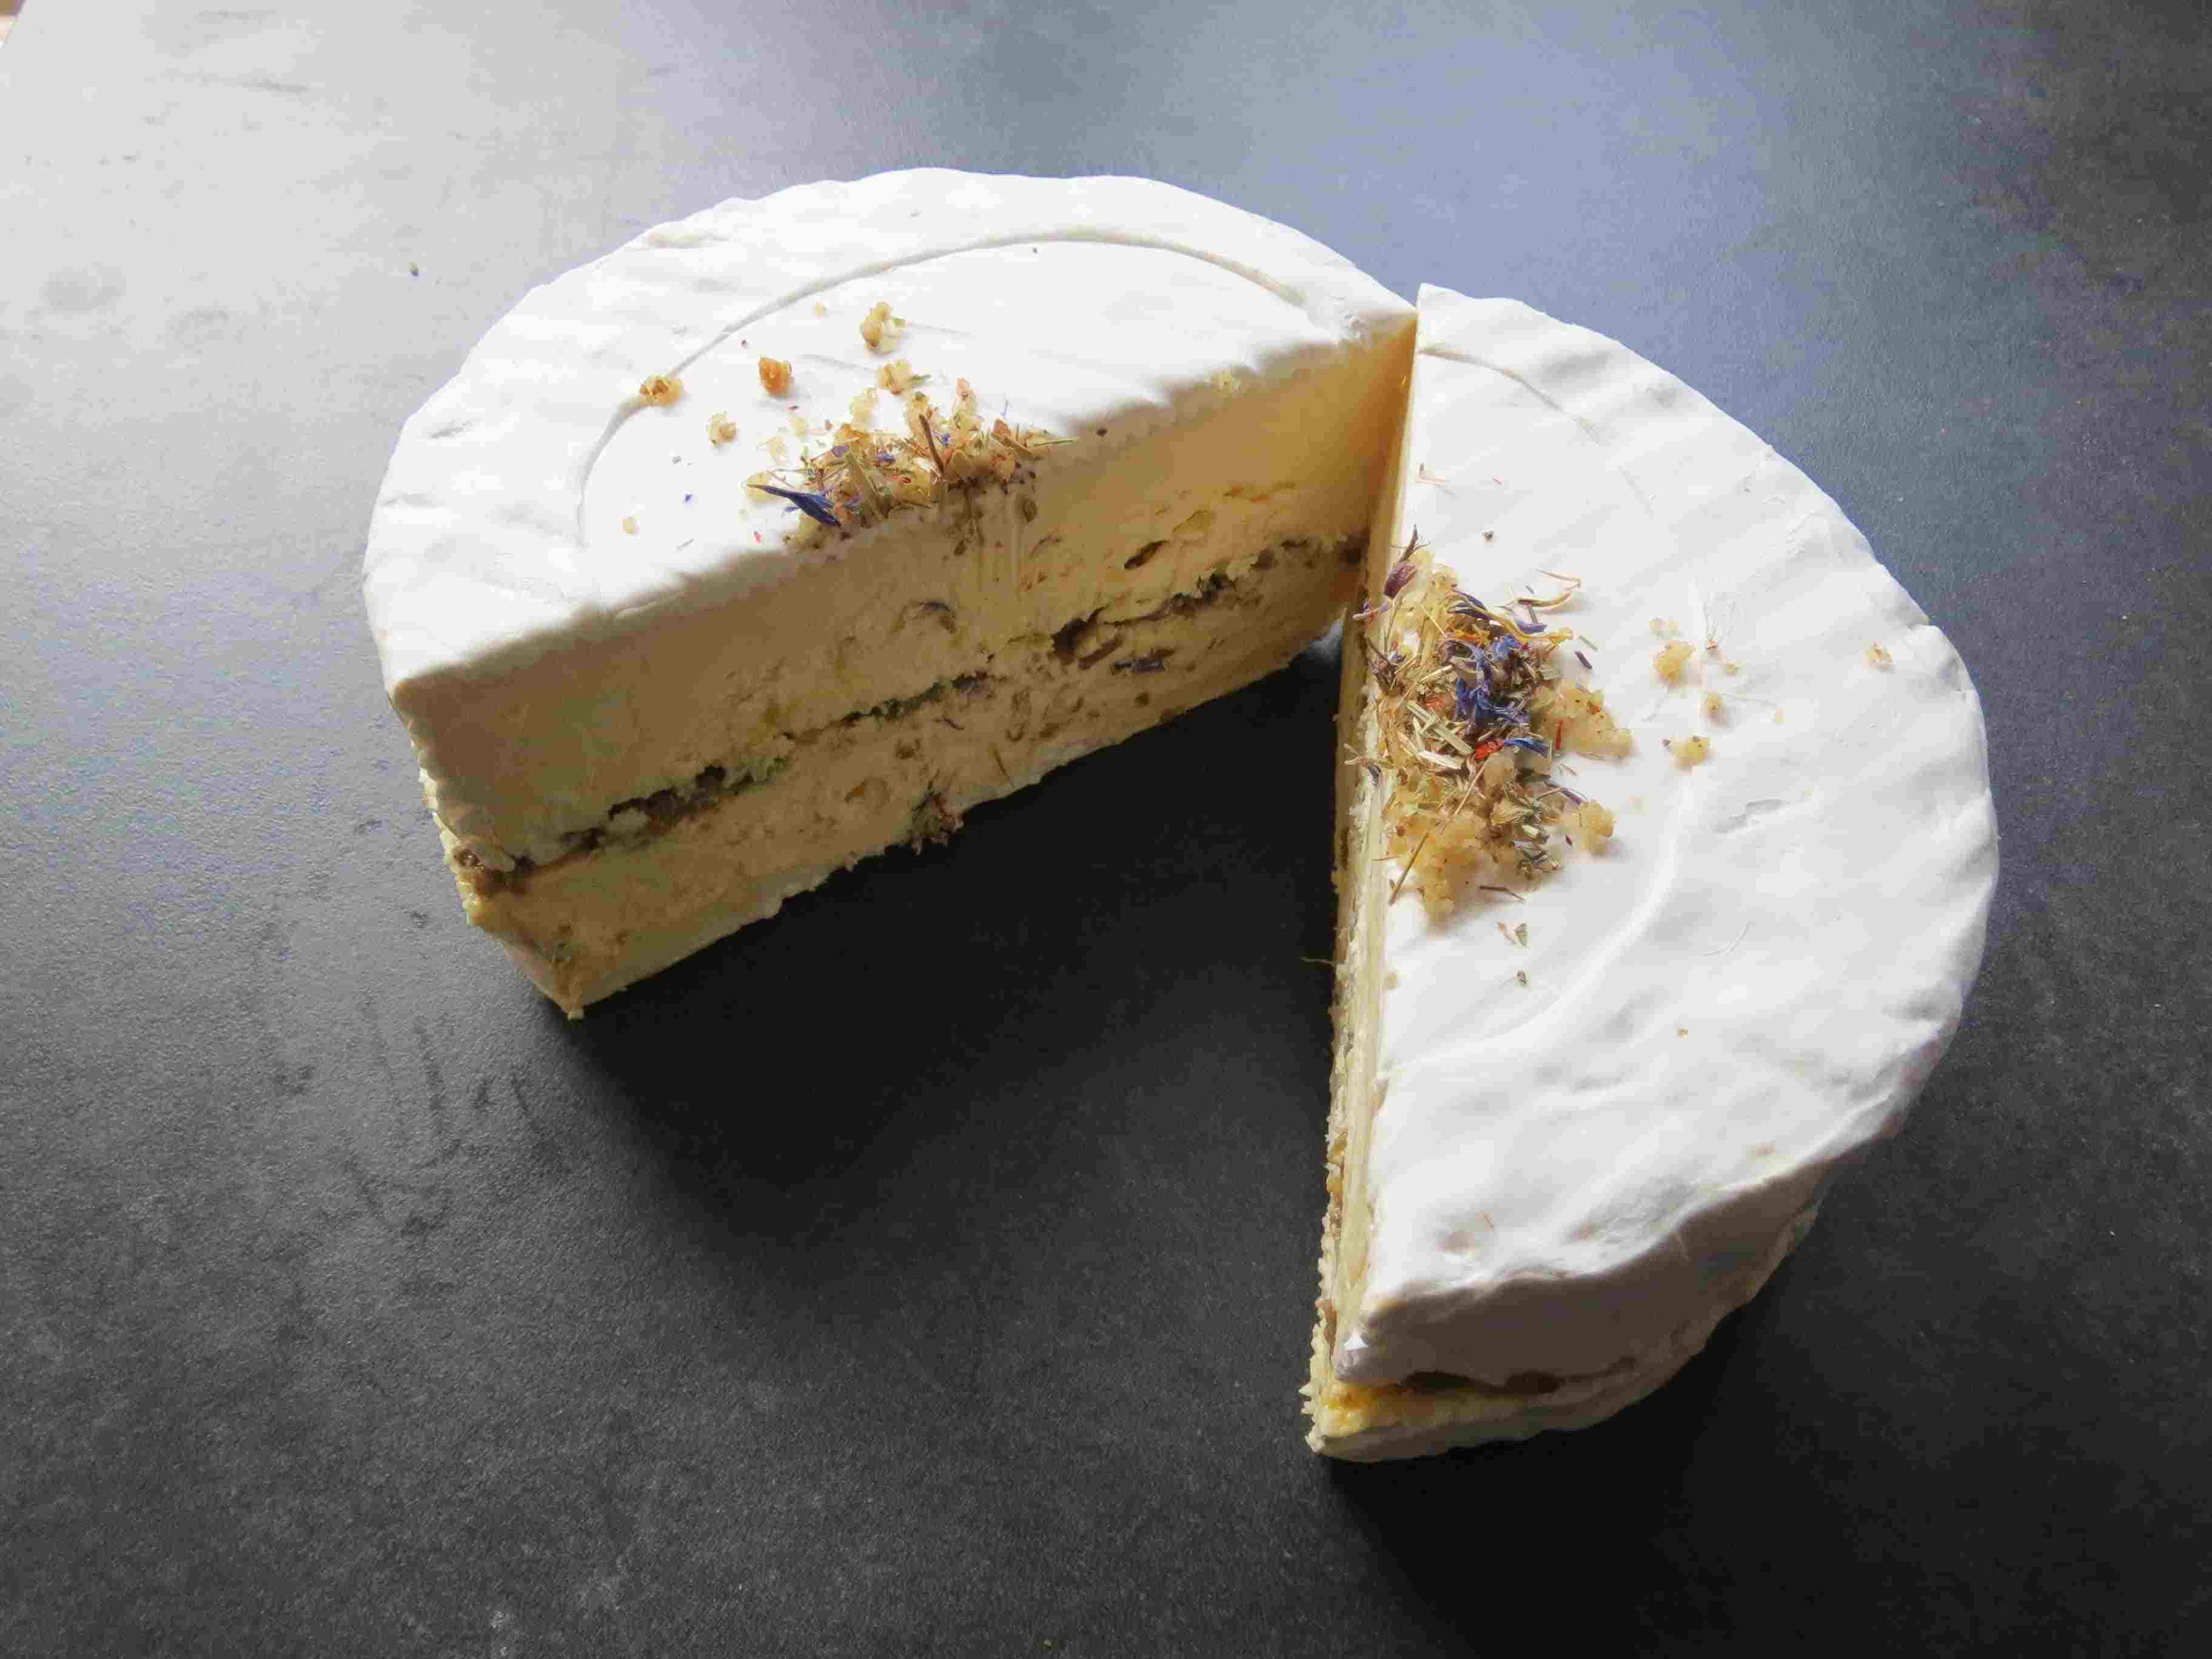 Truffle cheeses are a house specialty at the Fromagerie Hardouin-Langlet near the Marché d'Aligre in Paris.